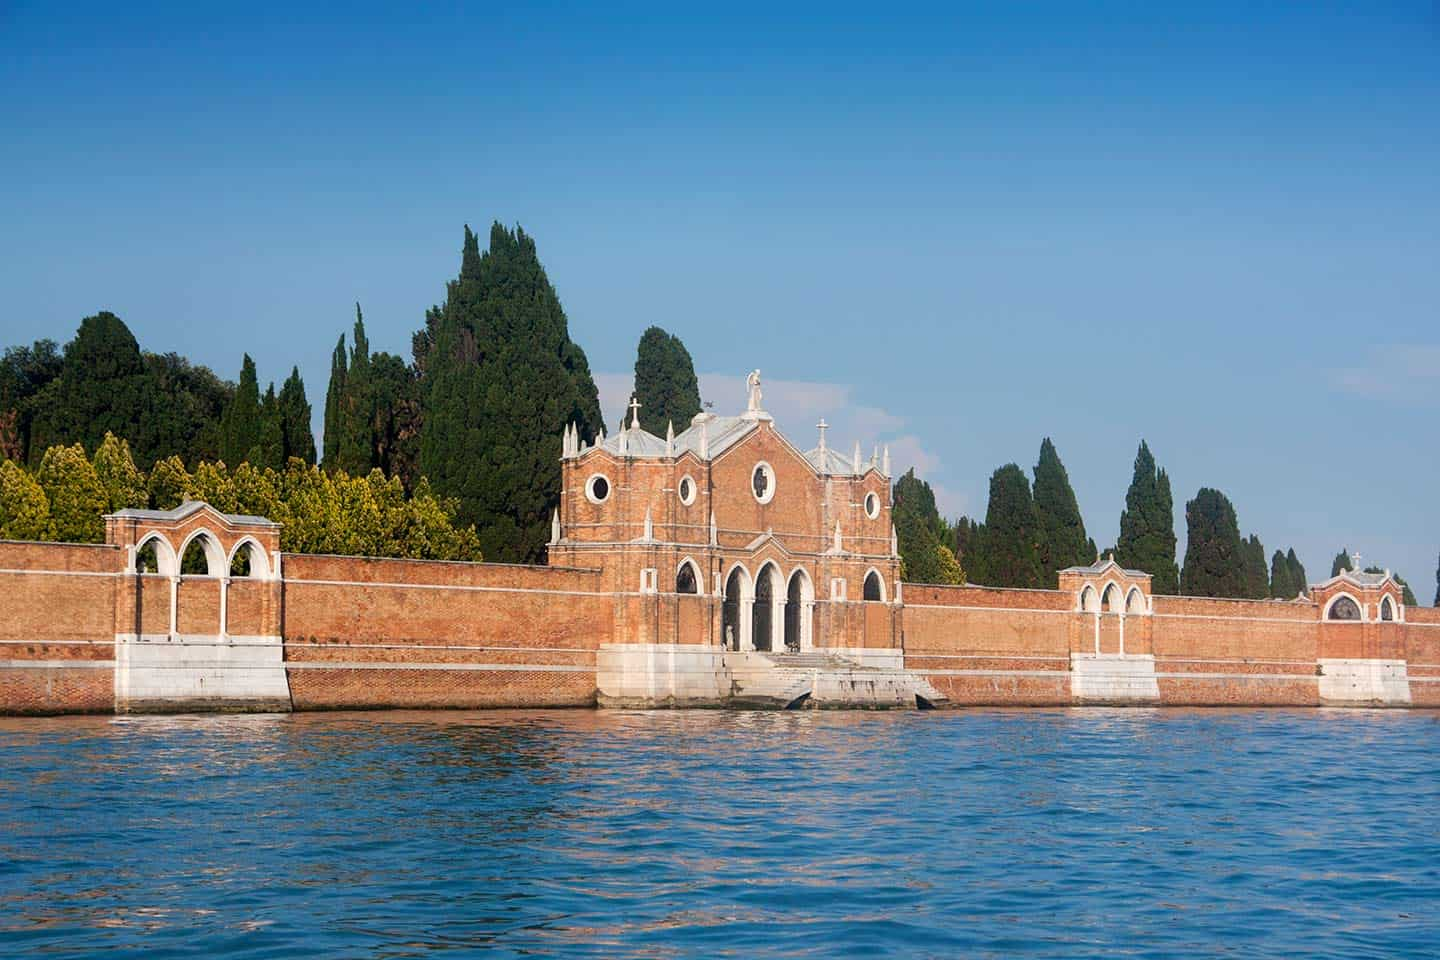 Image of Venice's cemetery on the island of San Michele